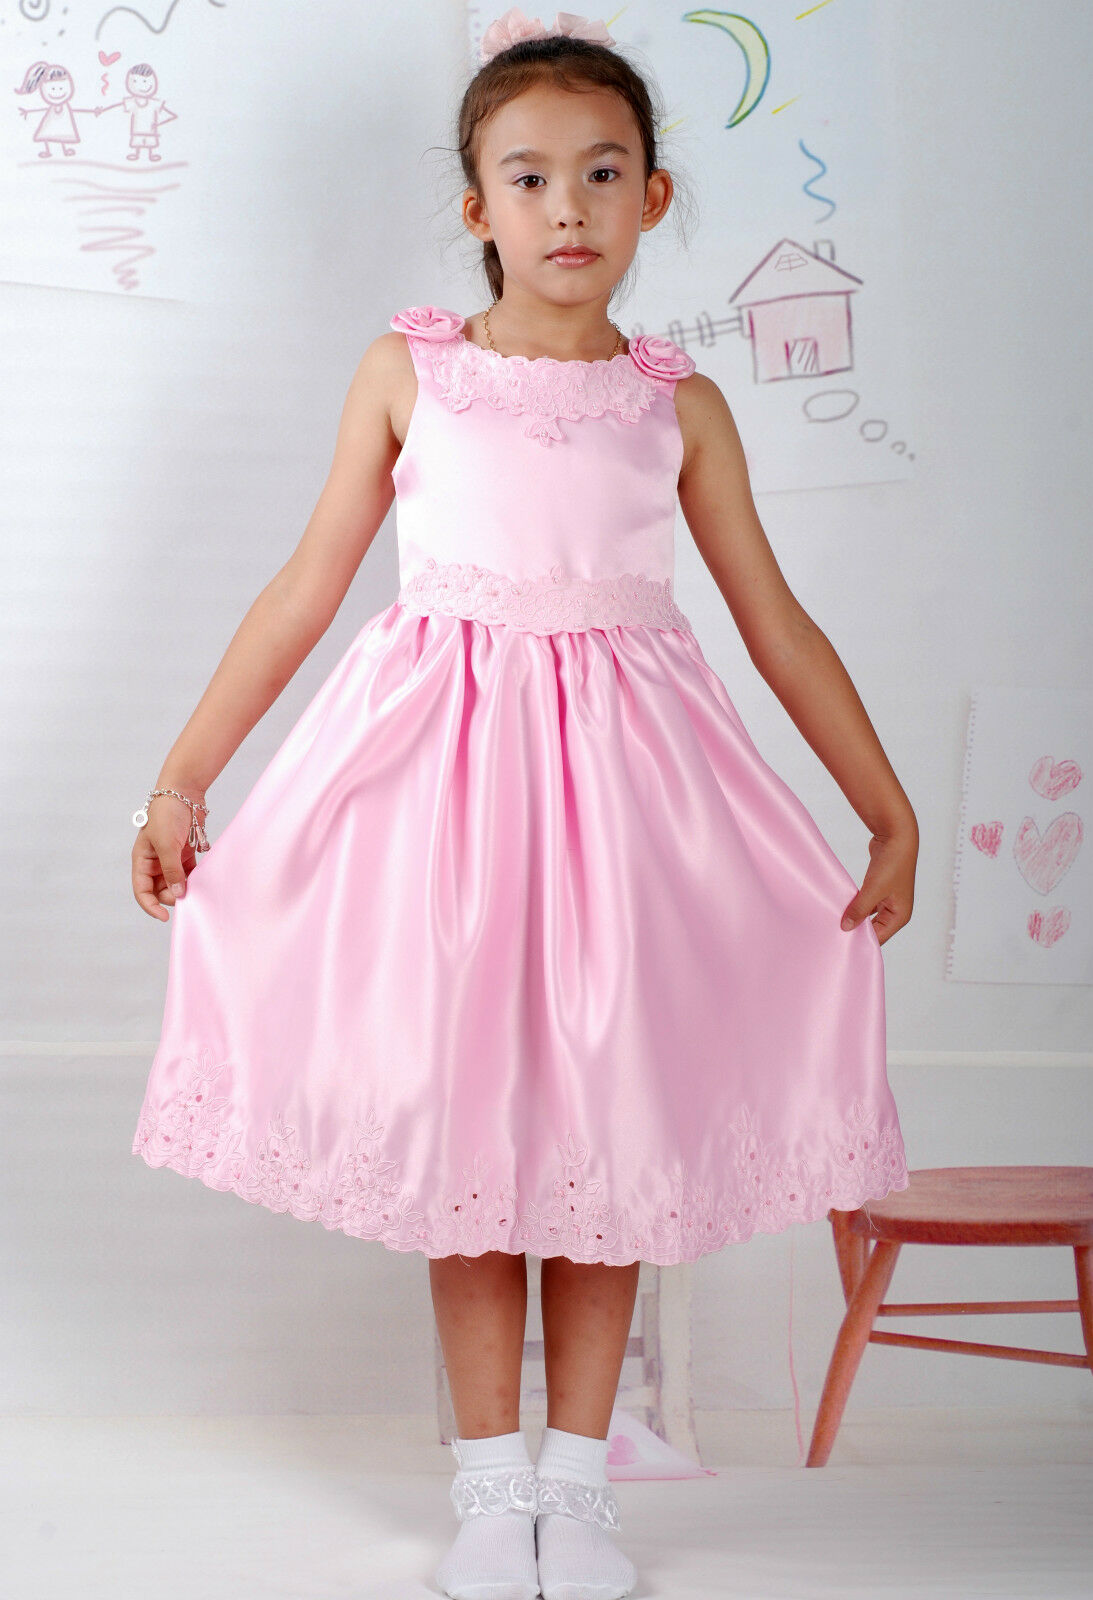 New Satin Flower Girl Party Bridesmaid Wedding Pageant Dress 18 Month to 5 Years